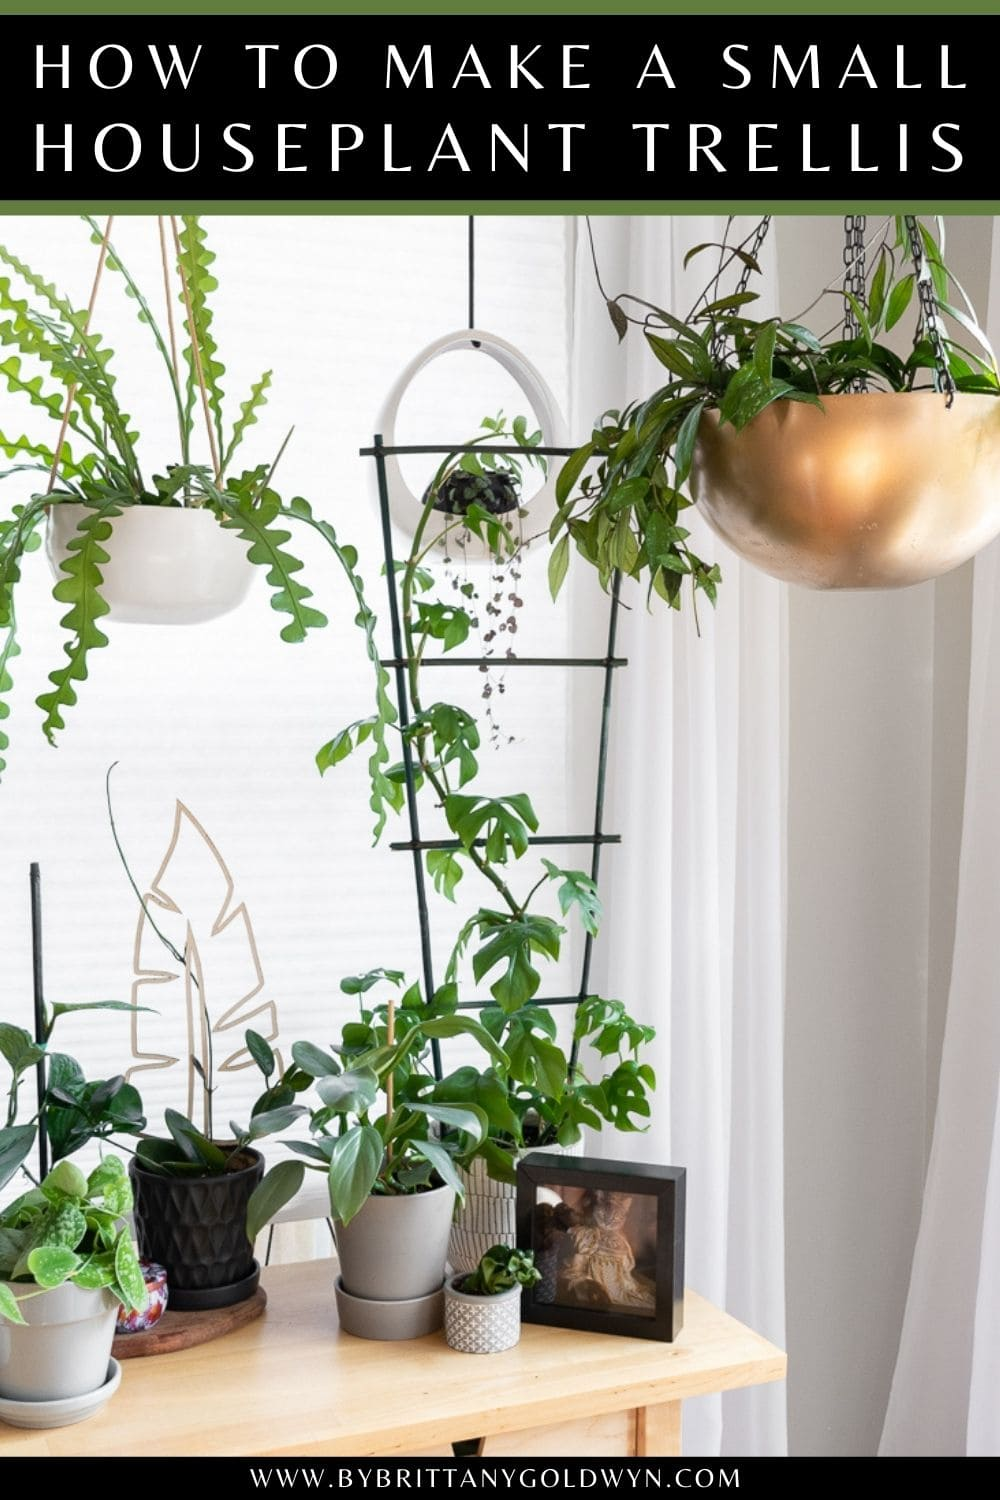 image of a DIY bamboo houseplant trellis with text overlay about how to make one